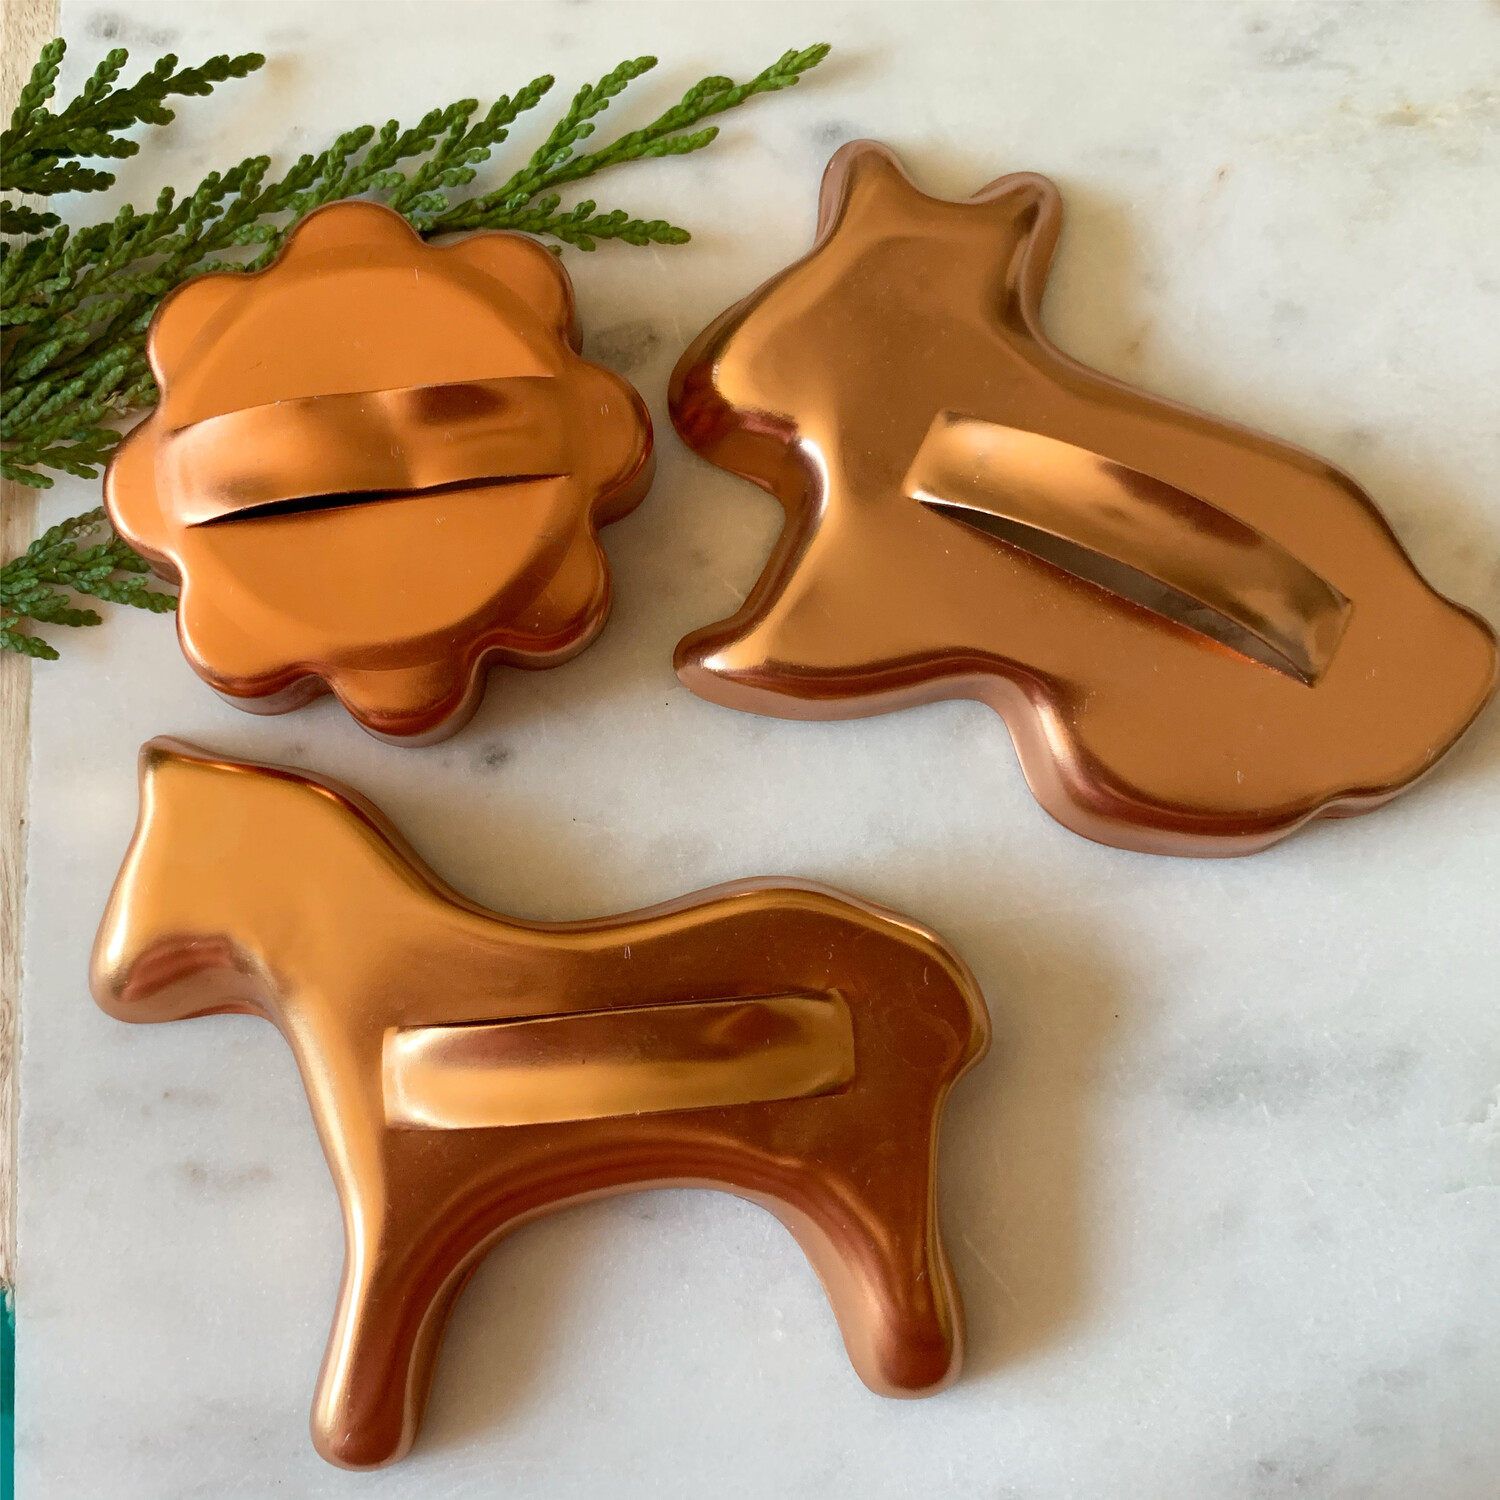 Vintage Cookie Cutter Set- Flower, Bunny And Horse